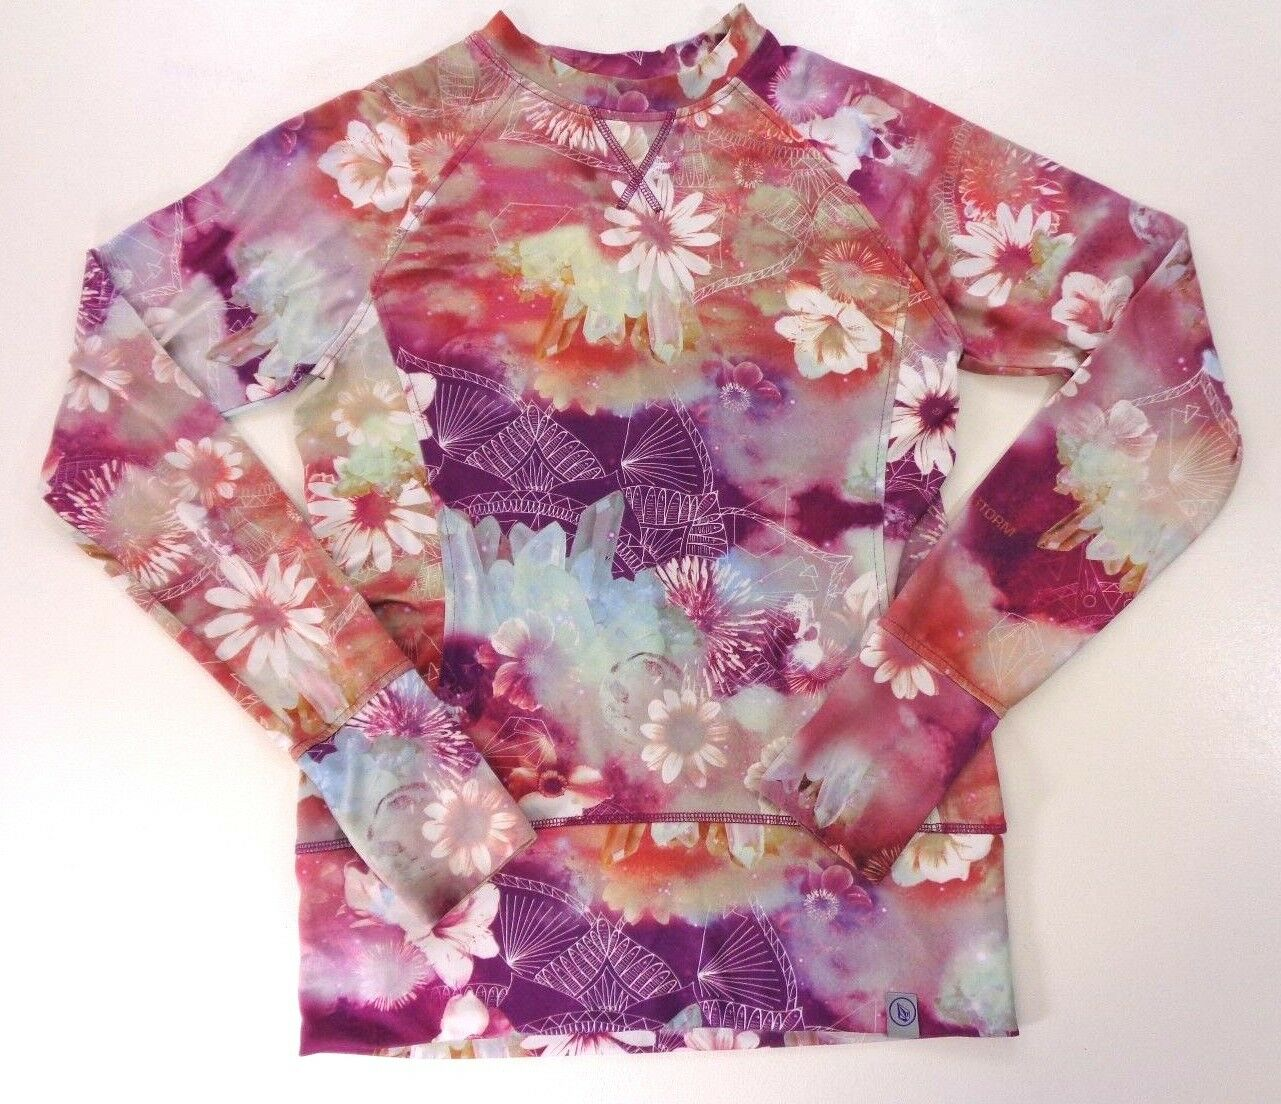 Volcom Long Sleeve Athletic Top Artsy Floral Print Front Pocket Womens S Small